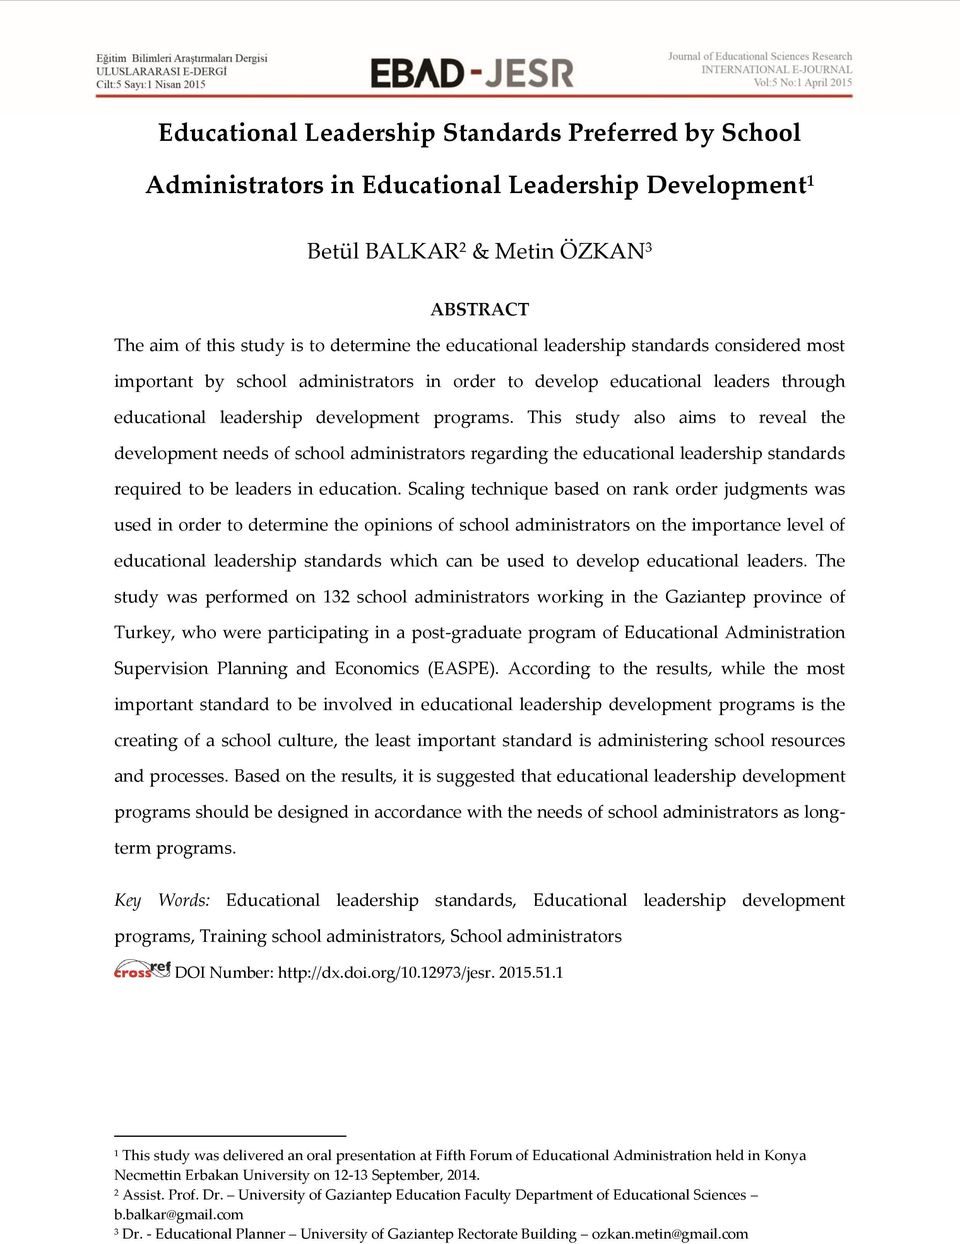 This study also aims to reveal the development needs of school administrators regarding the educational leadership standards required to be leaders in education.